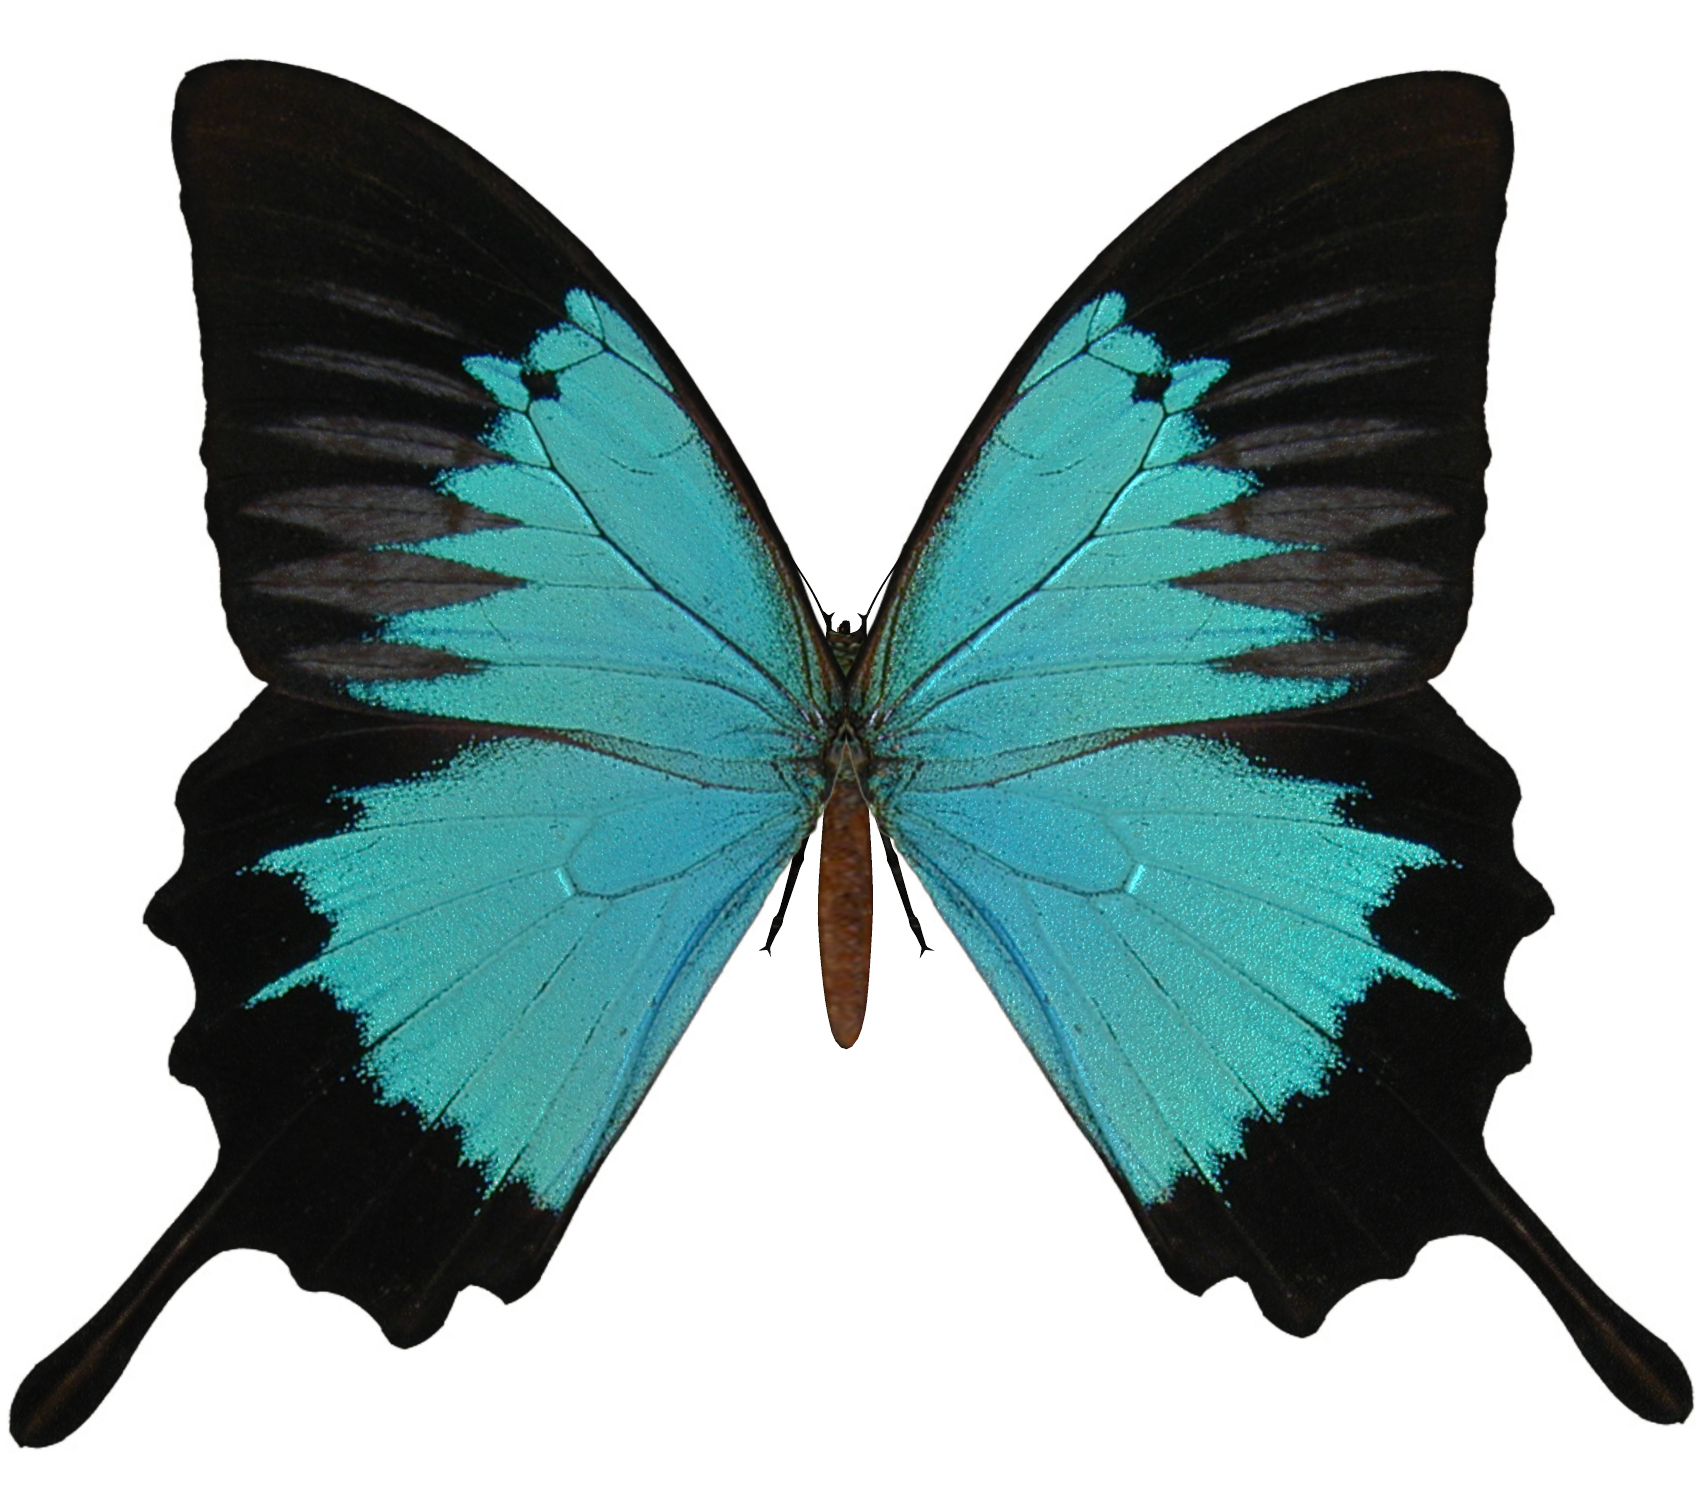 e_s_butterfly_v_by_elevit_stock